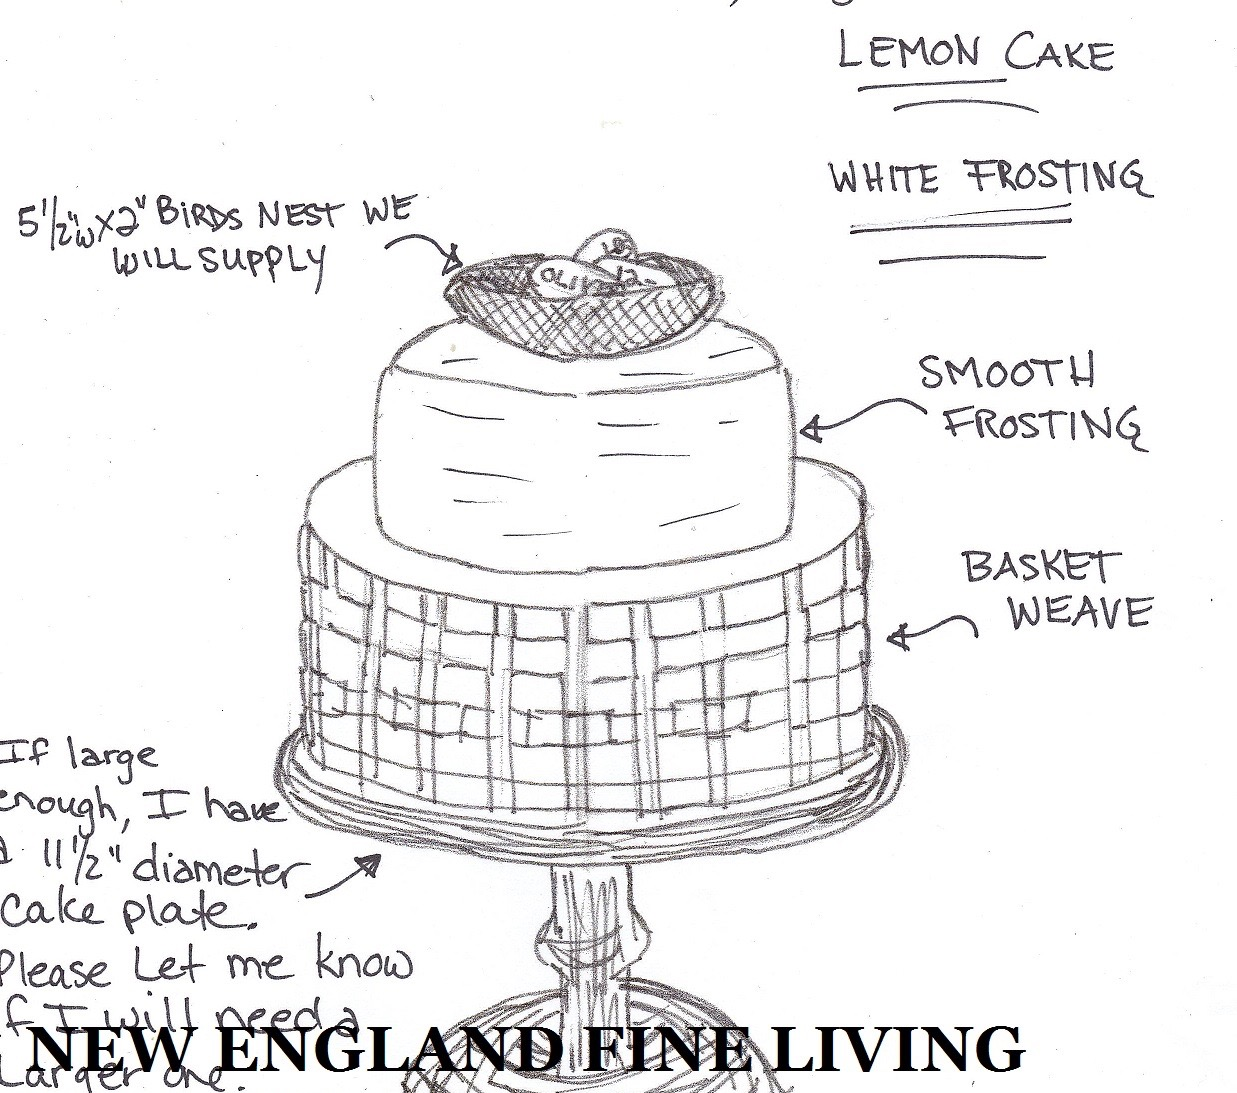 Cake drawing for birds nest - welcome baby - New England Fine Living.jpg